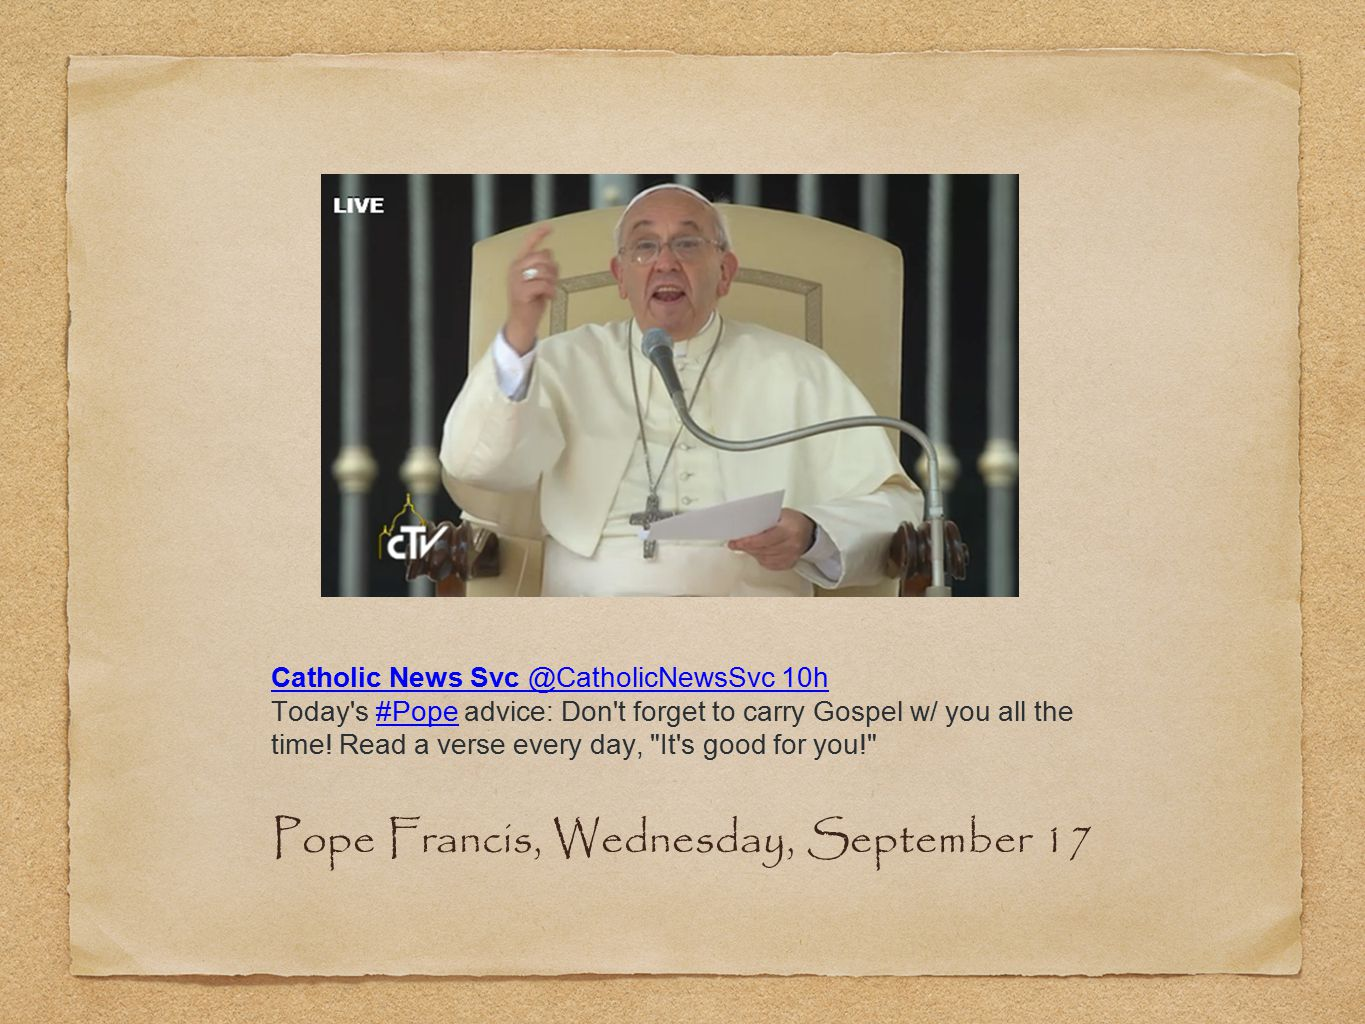 Catholic News Svc @CatholicNewsSvc 10h Today s #Pope advice: Don t forget to carry Gospel w/ you all the time.